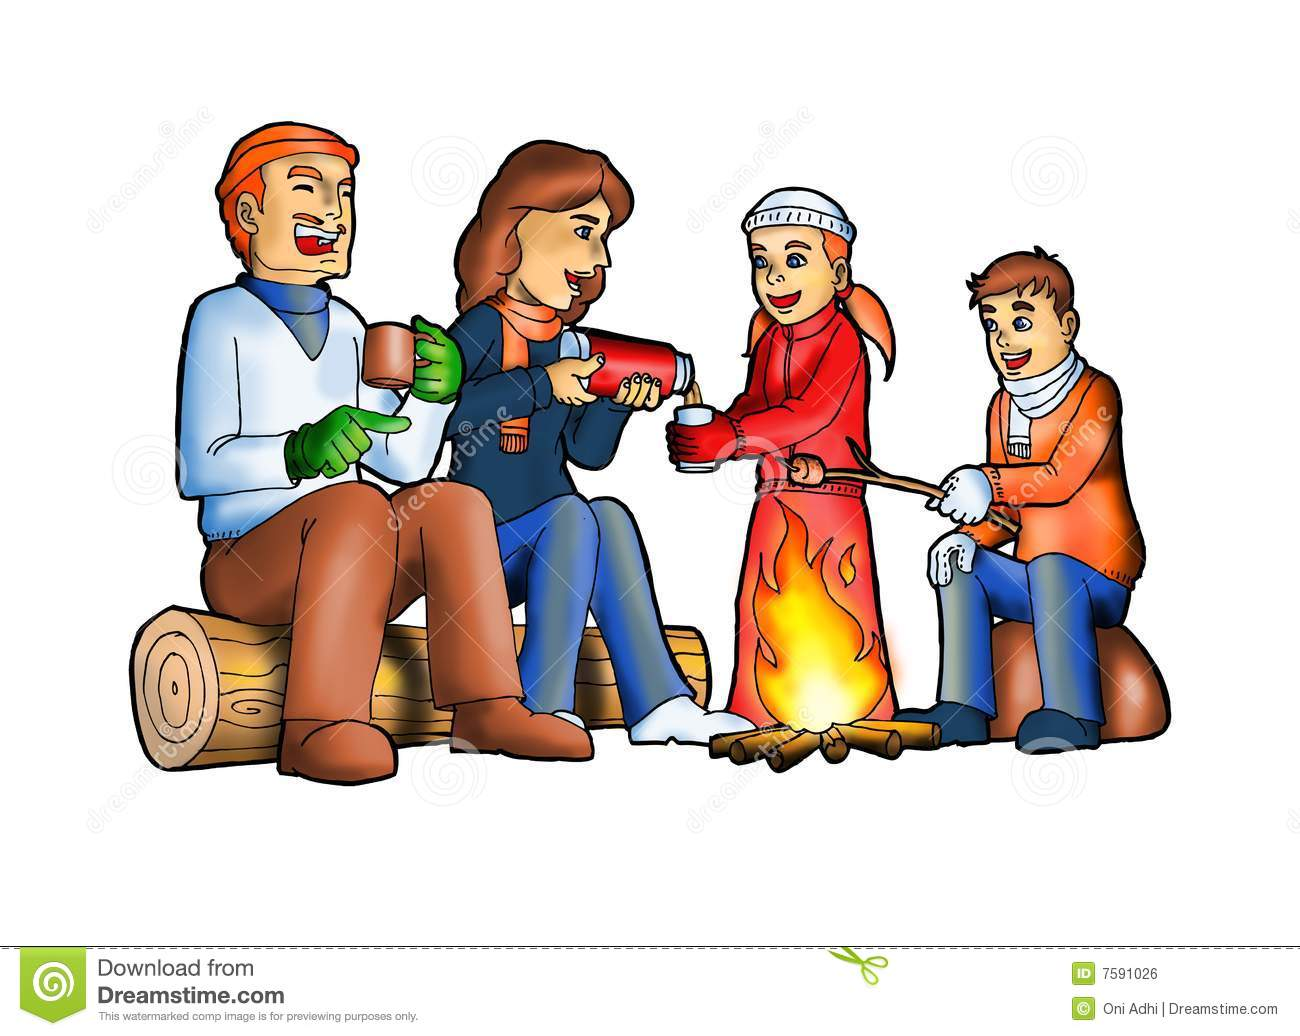 Camping clipart family camping. Free download best